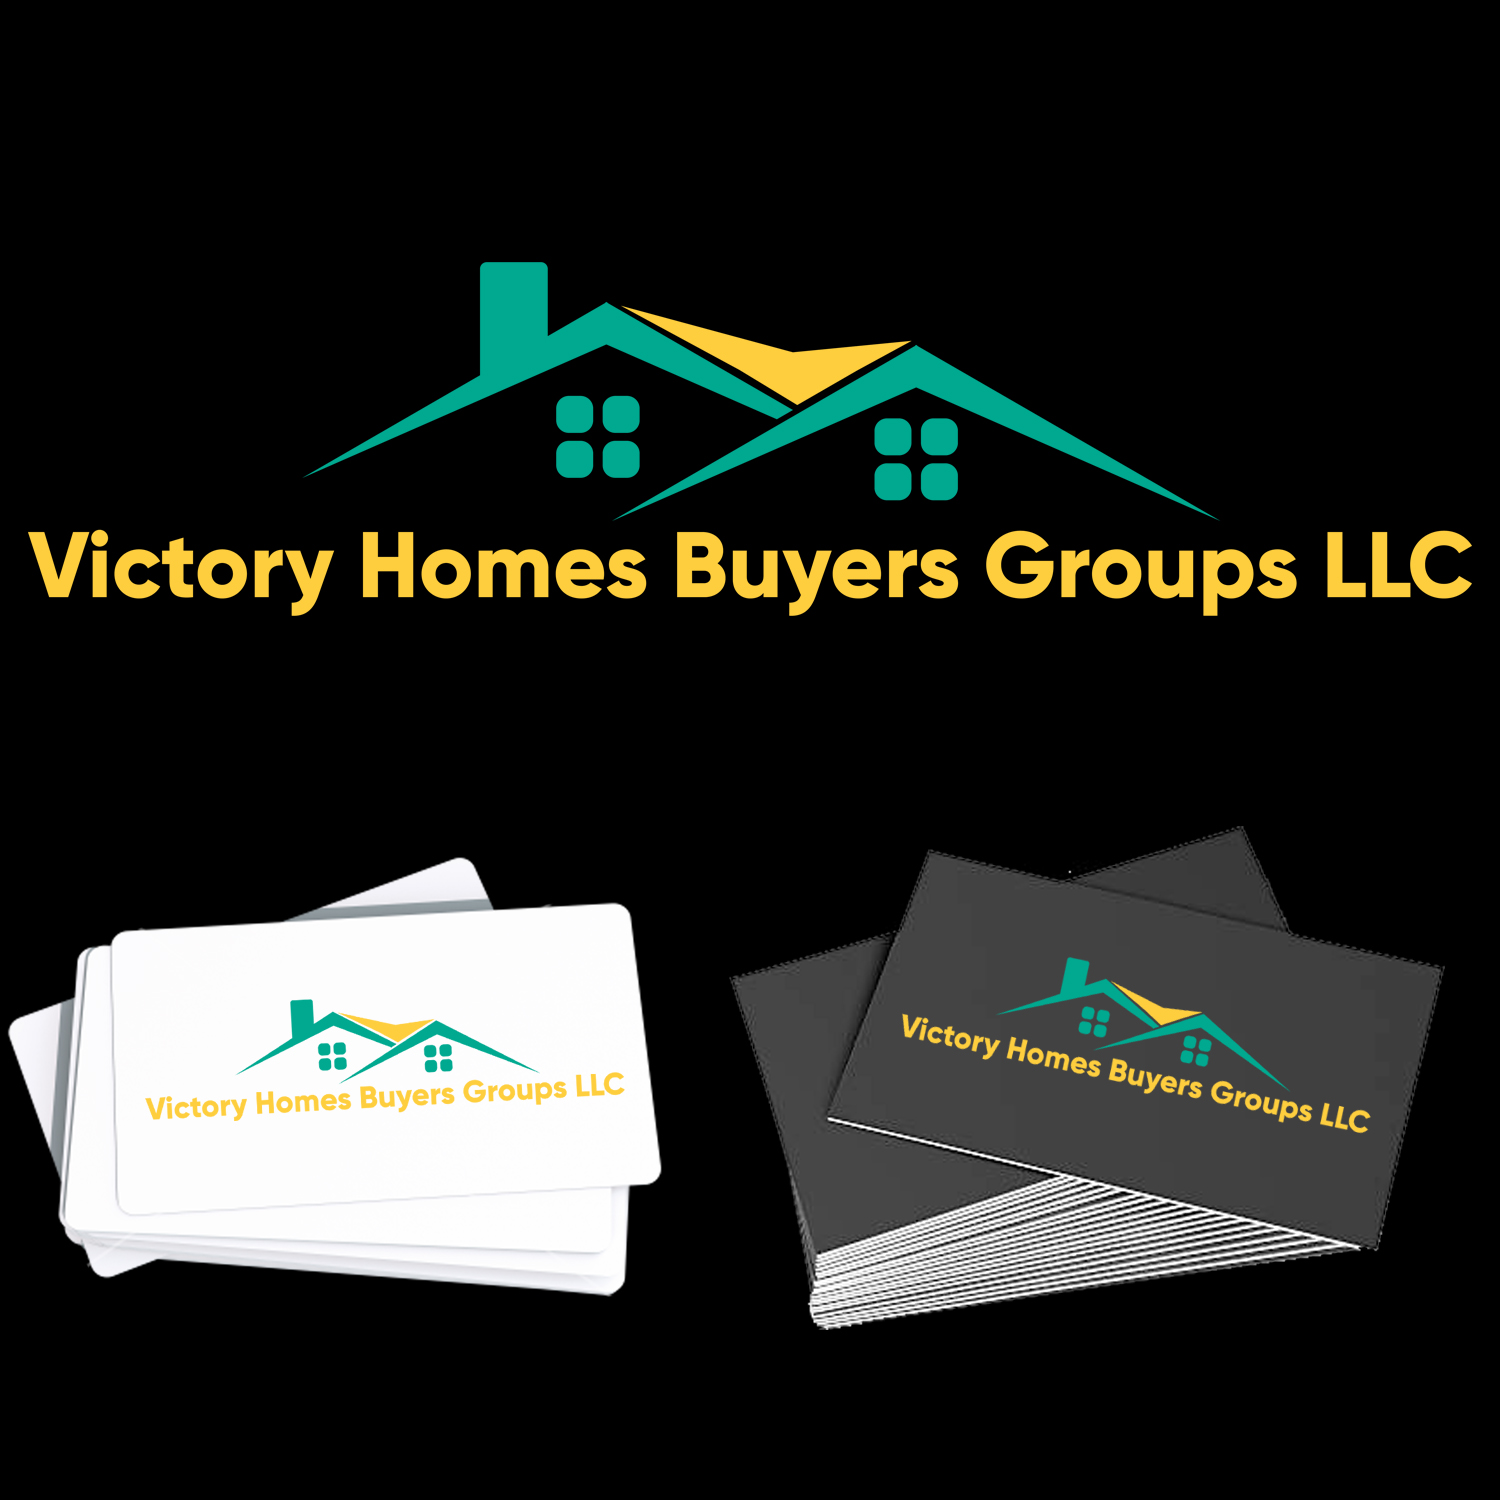 Remarkable Modern Professional Real Estate Logo Design For Victory Best Image Libraries Counlowcountryjoecom